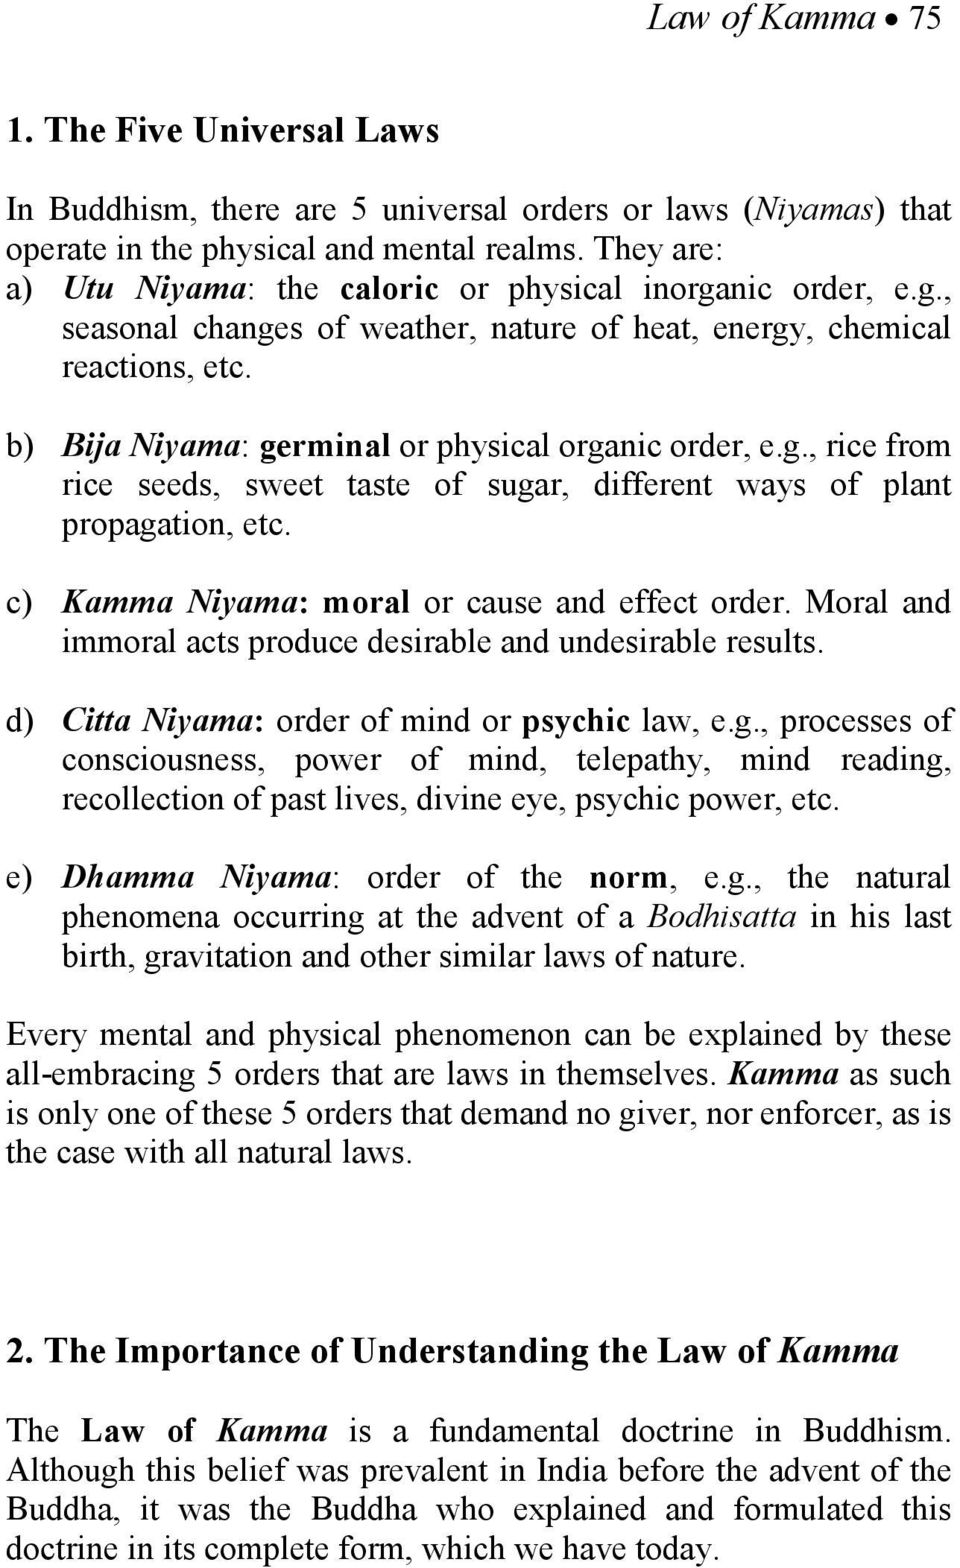 b) Bija iyama: germinal or physical organic order, e.g., rice from rice seeds, sweet taste of sugar, different ways of plant propagation, etc. c) Kamma iyama: moral or cause and effect order.